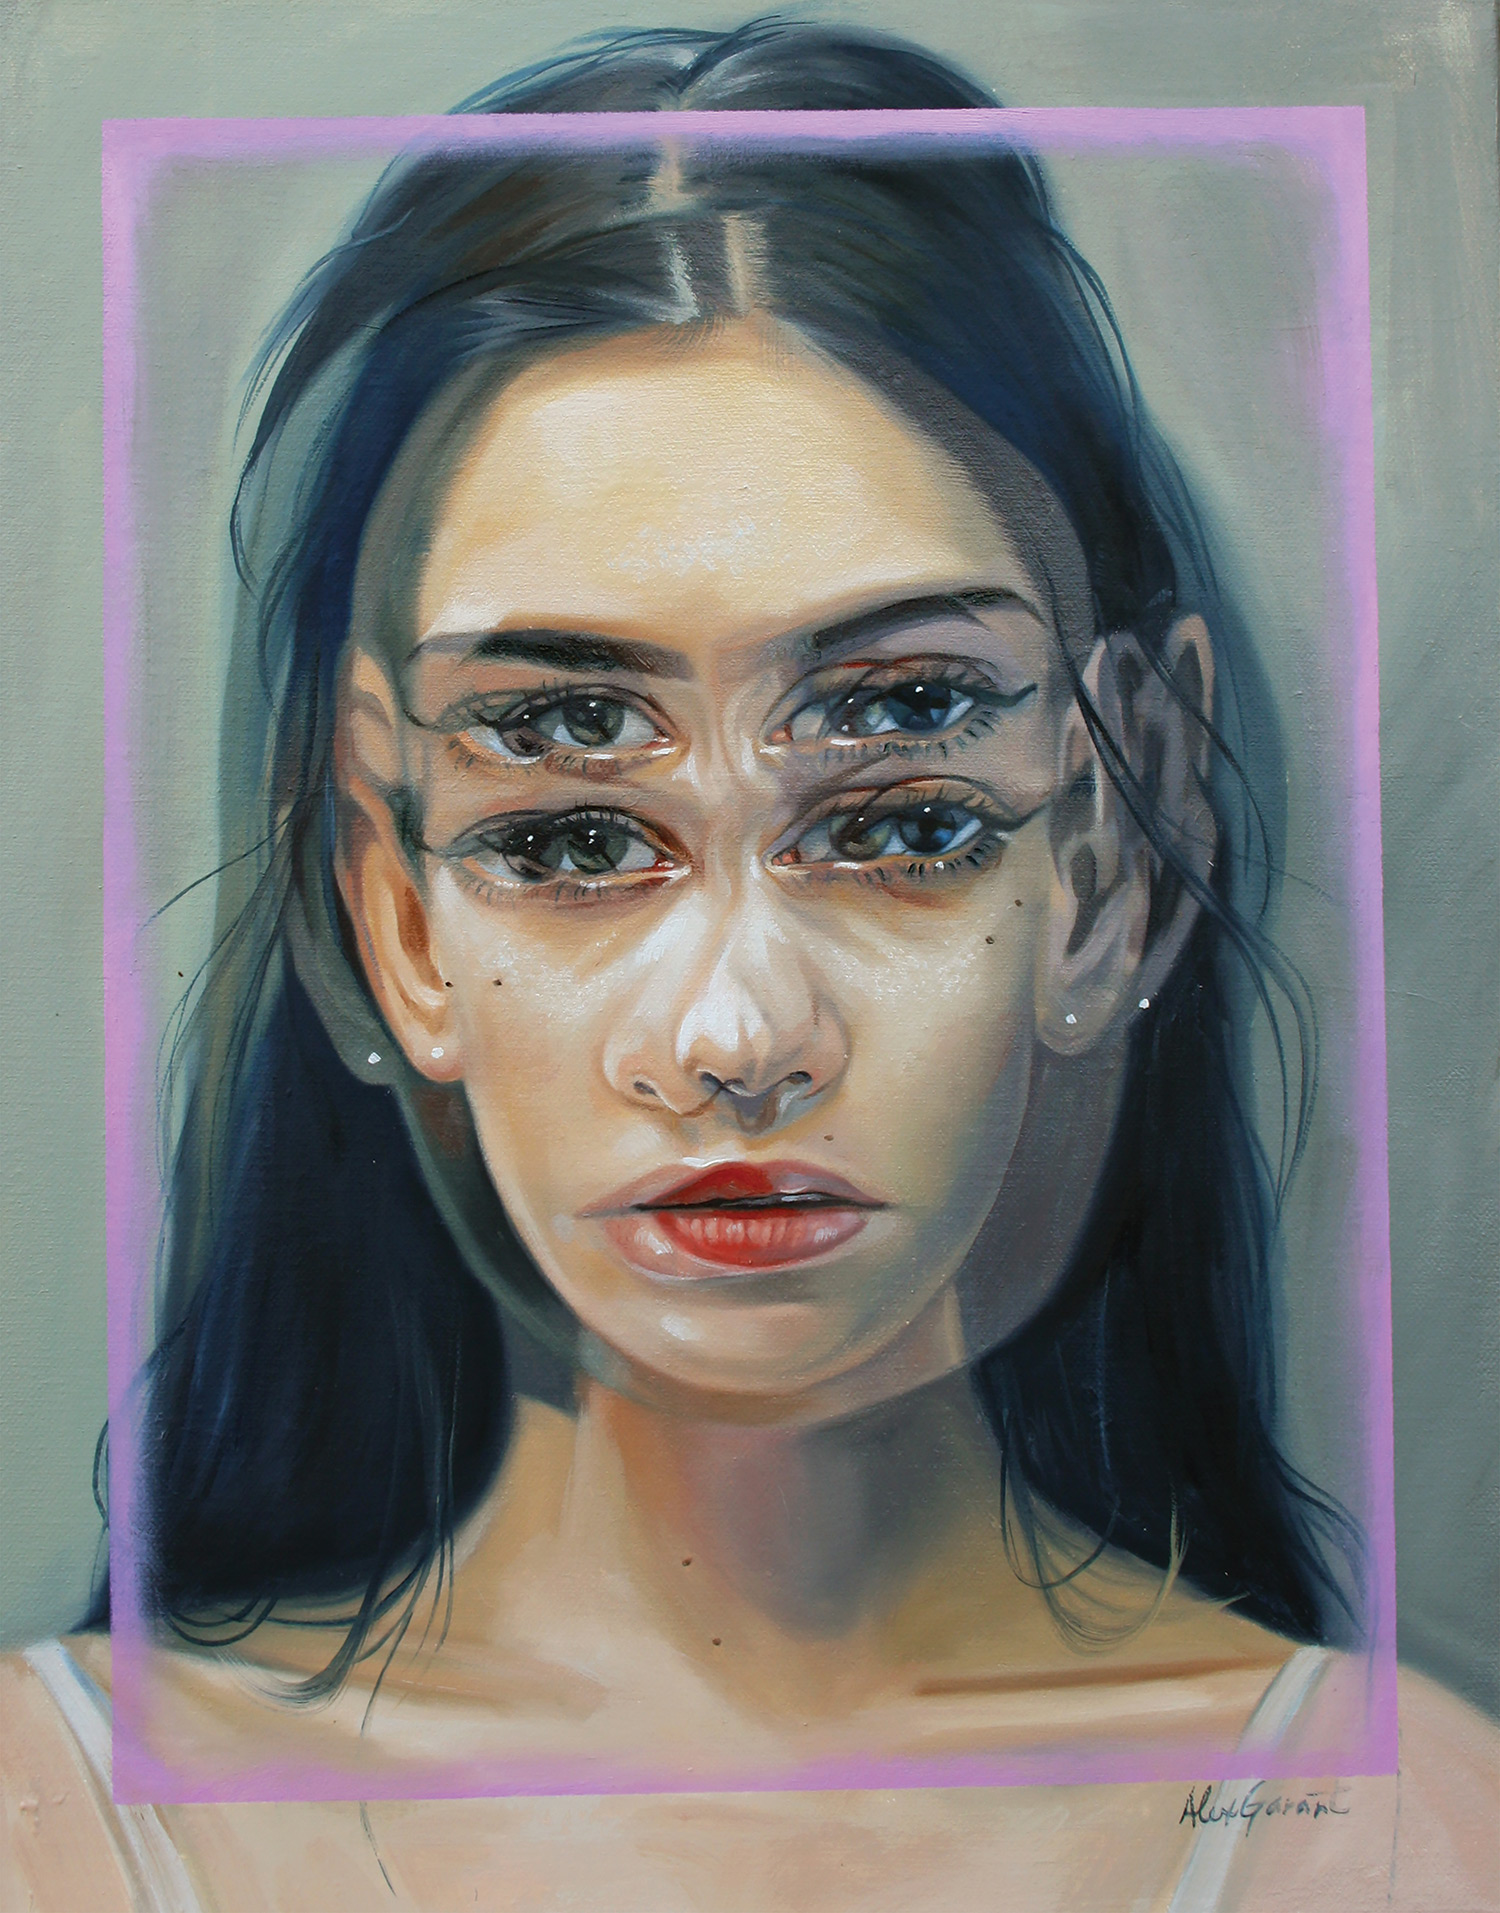 Alex Garant - Myself Regretfully